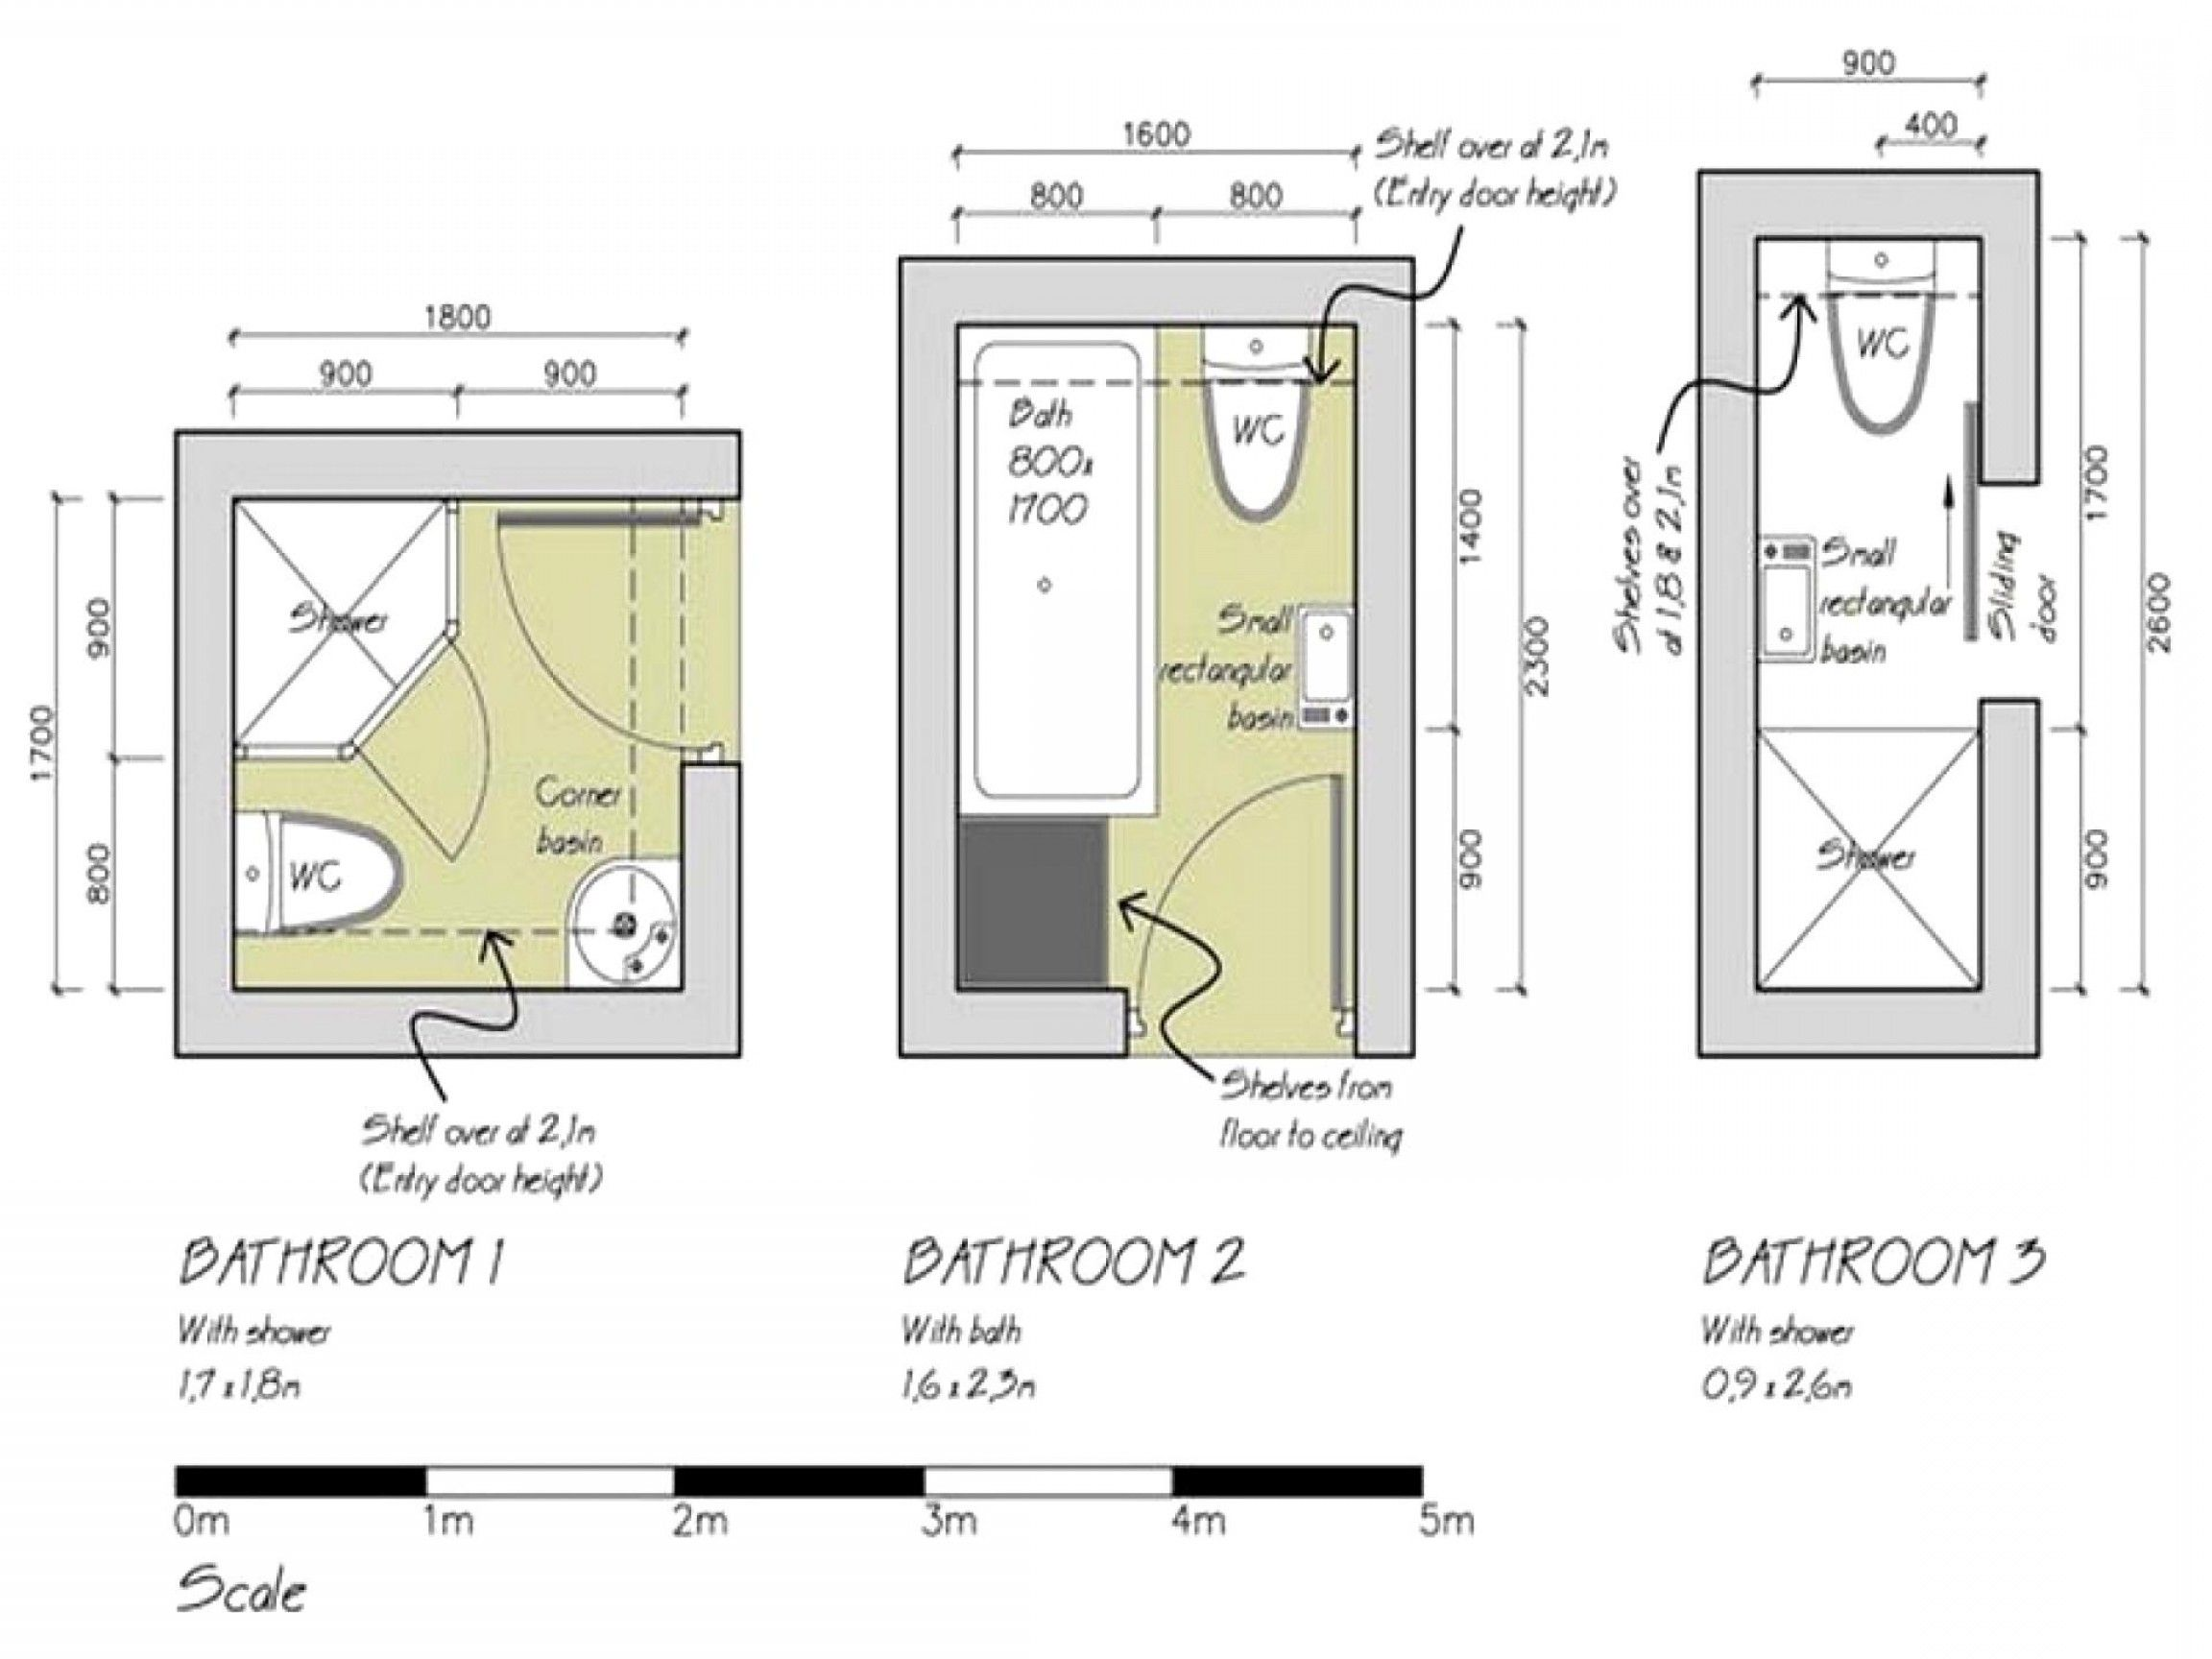 Best Information About Bathroom Size And Space Arrangement Engineering Discoveries In 2020 Small Bathroom Floor Plans Bathroom Dimensions Bathroom Layout Plans Small bathroom design plans